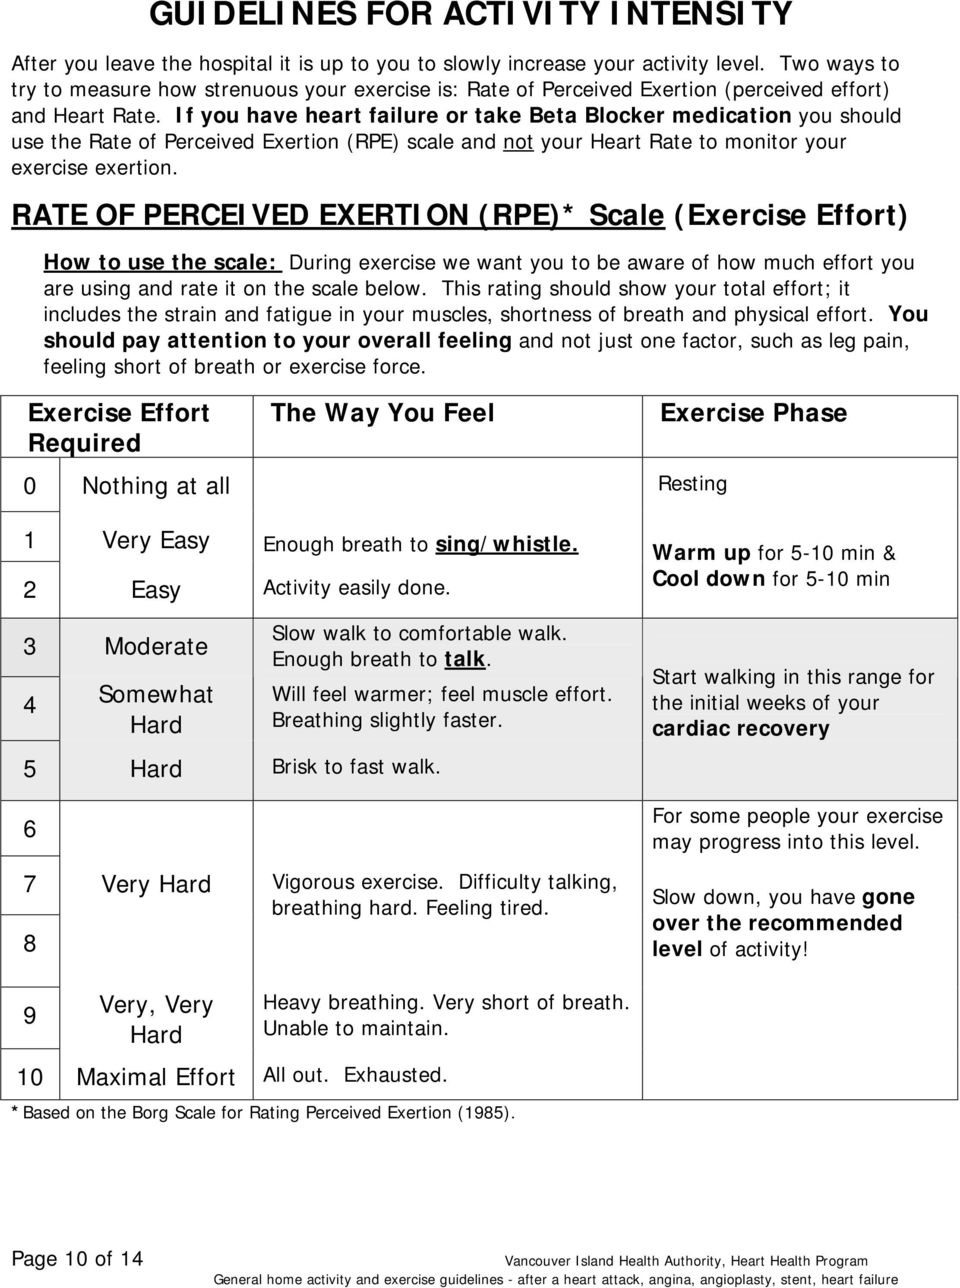 If you have heart failure or take Beta Blocker medication you should use the Rate of Perceived Exertion (RPE) scale and not your Heart Rate to monitor your exercise exertion.